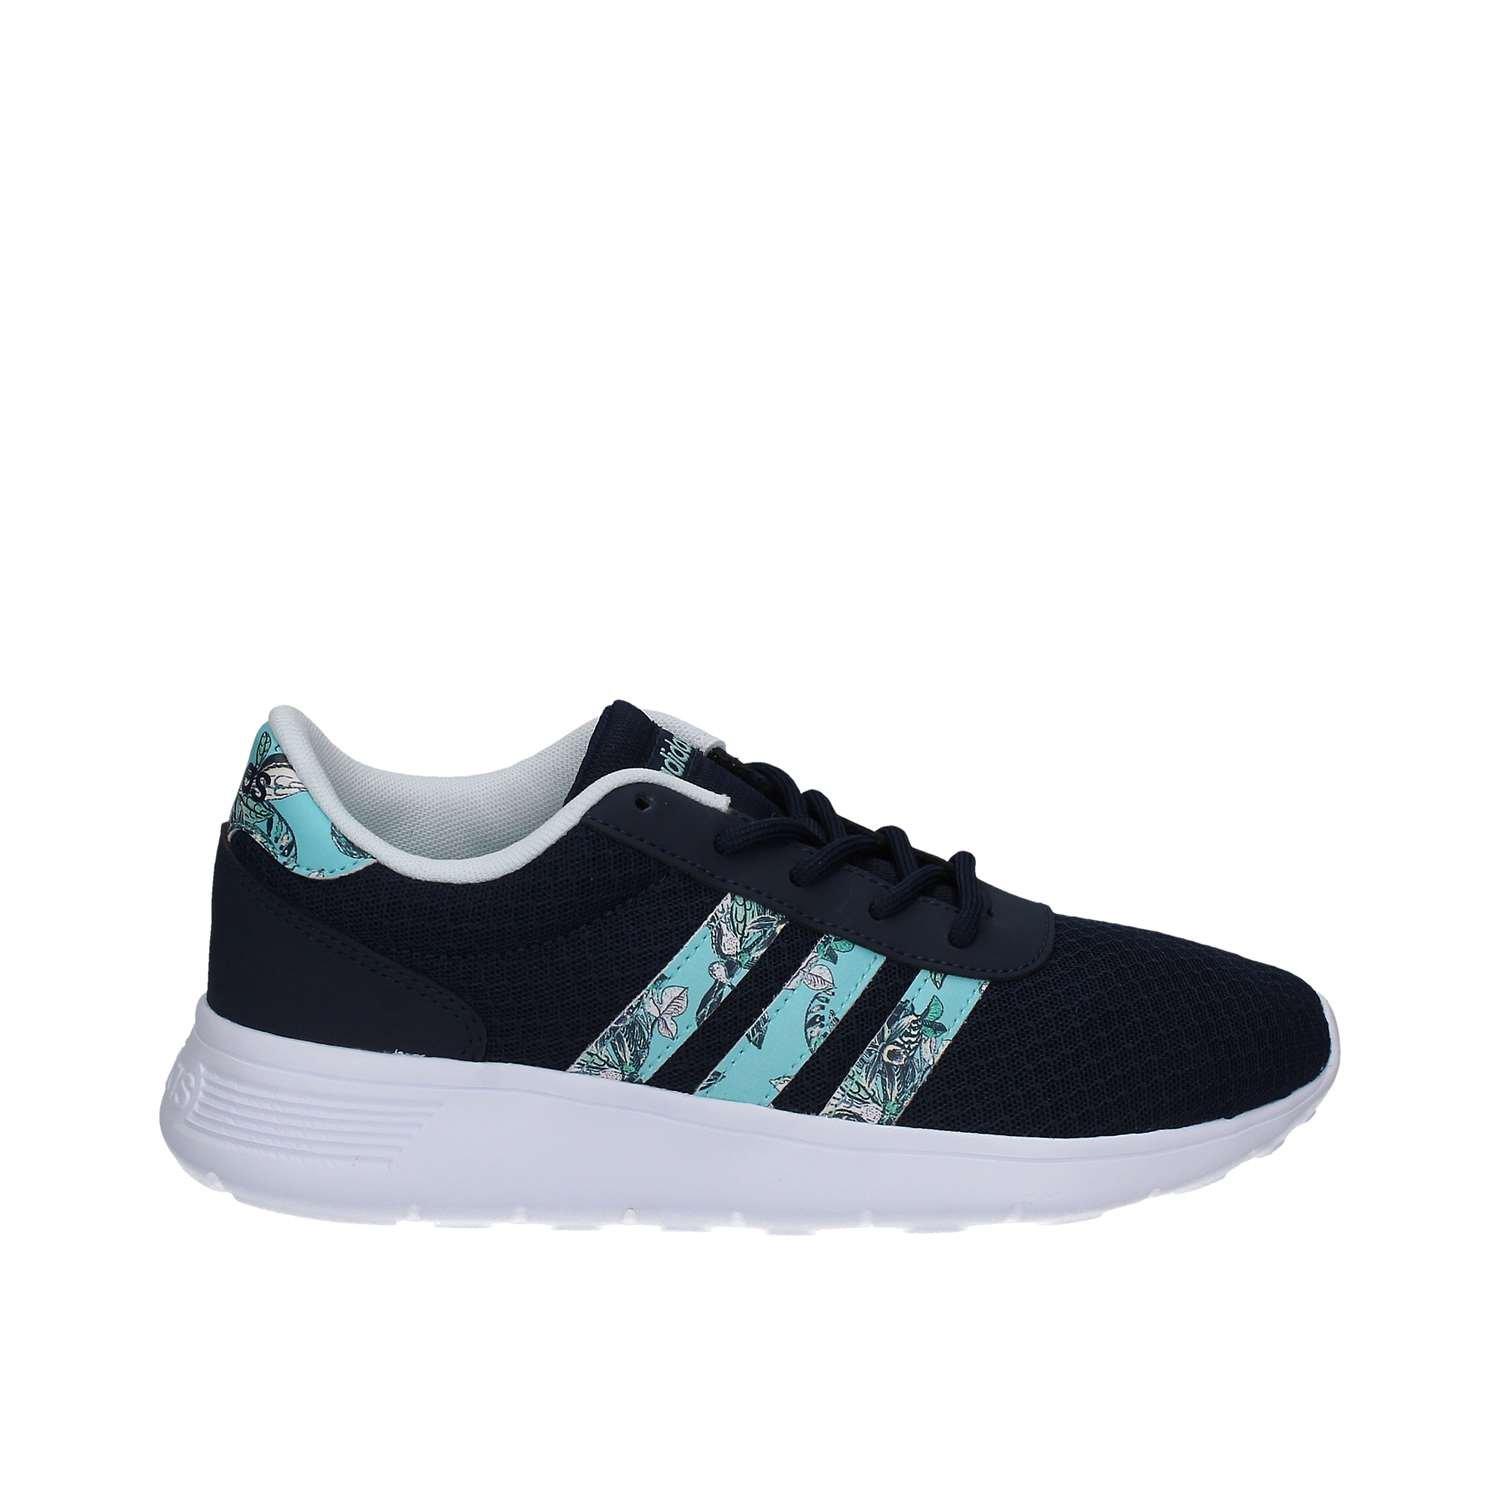 best service fb096 3e311 ... new zealand adidas neo aw3833 calzado deportivo mujeres 4d8db b398a